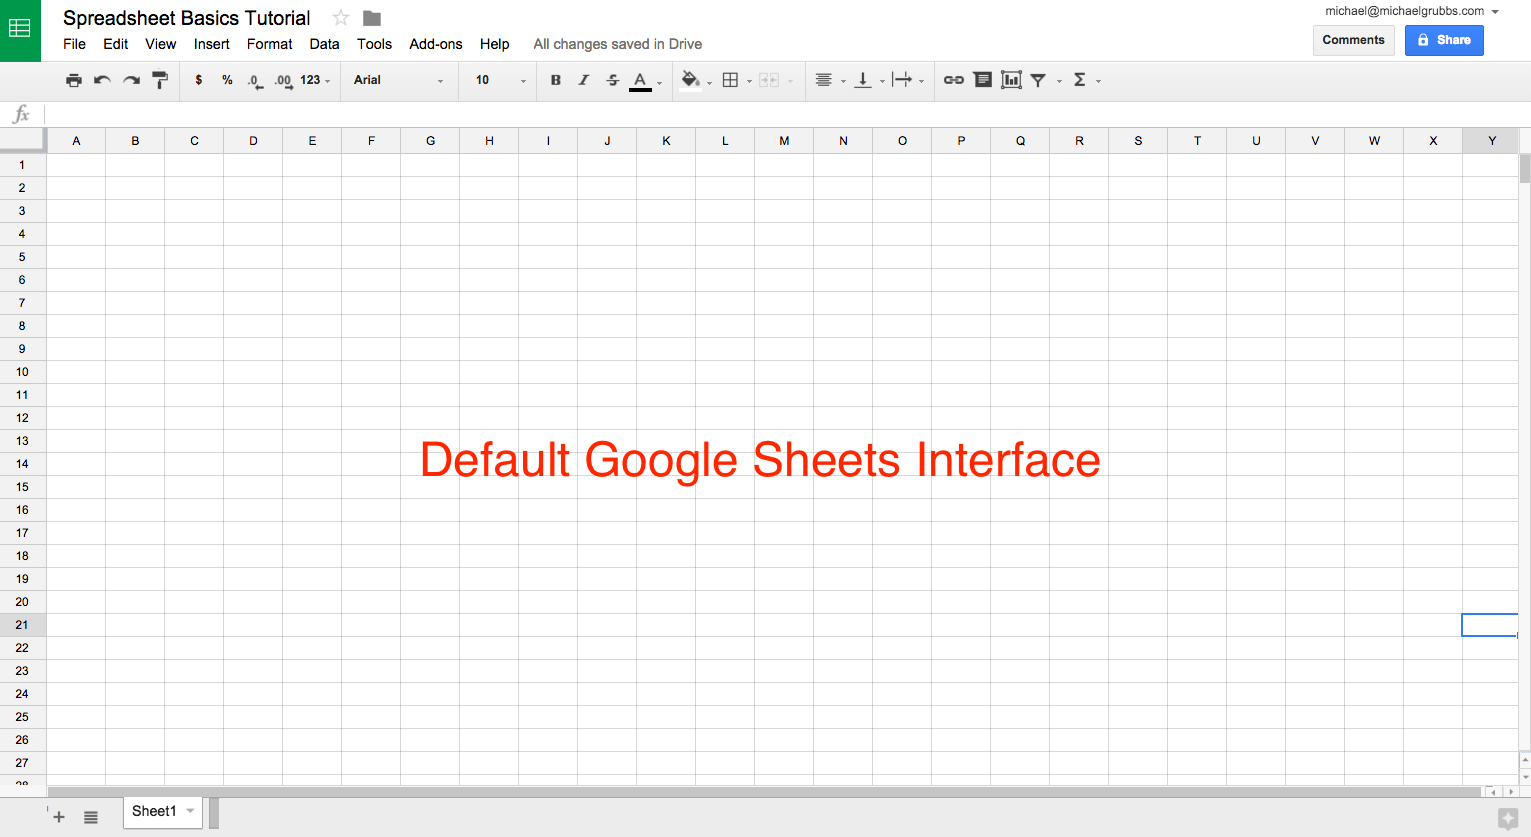 Simple Spreadsheet Online With Google Sheets 101: The Beginner's Guide To Online Spreadsheets  The